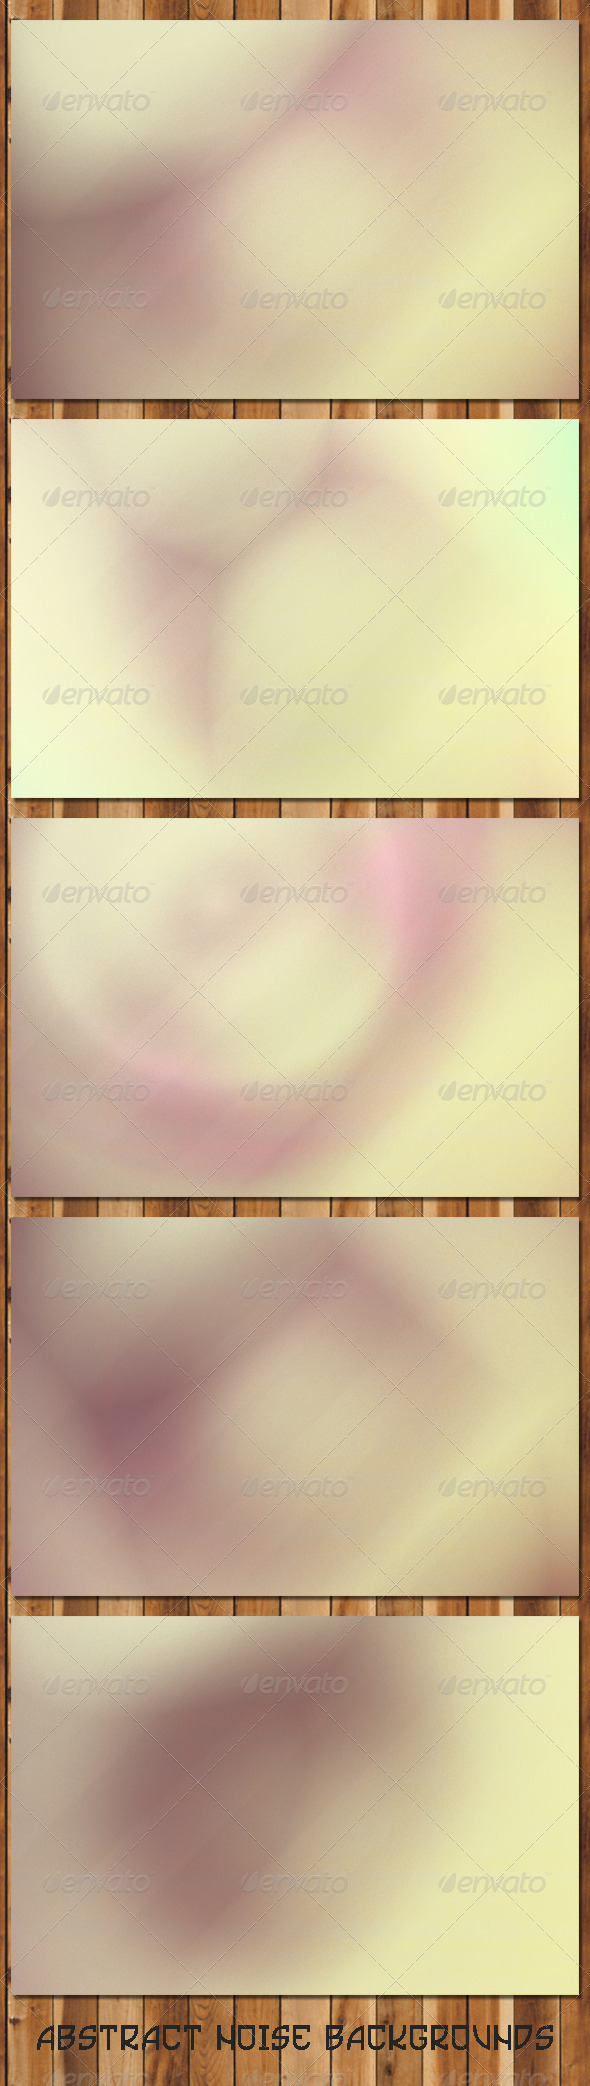 GraphicRiver 5 Abstract Noise Backgrounds 5902403